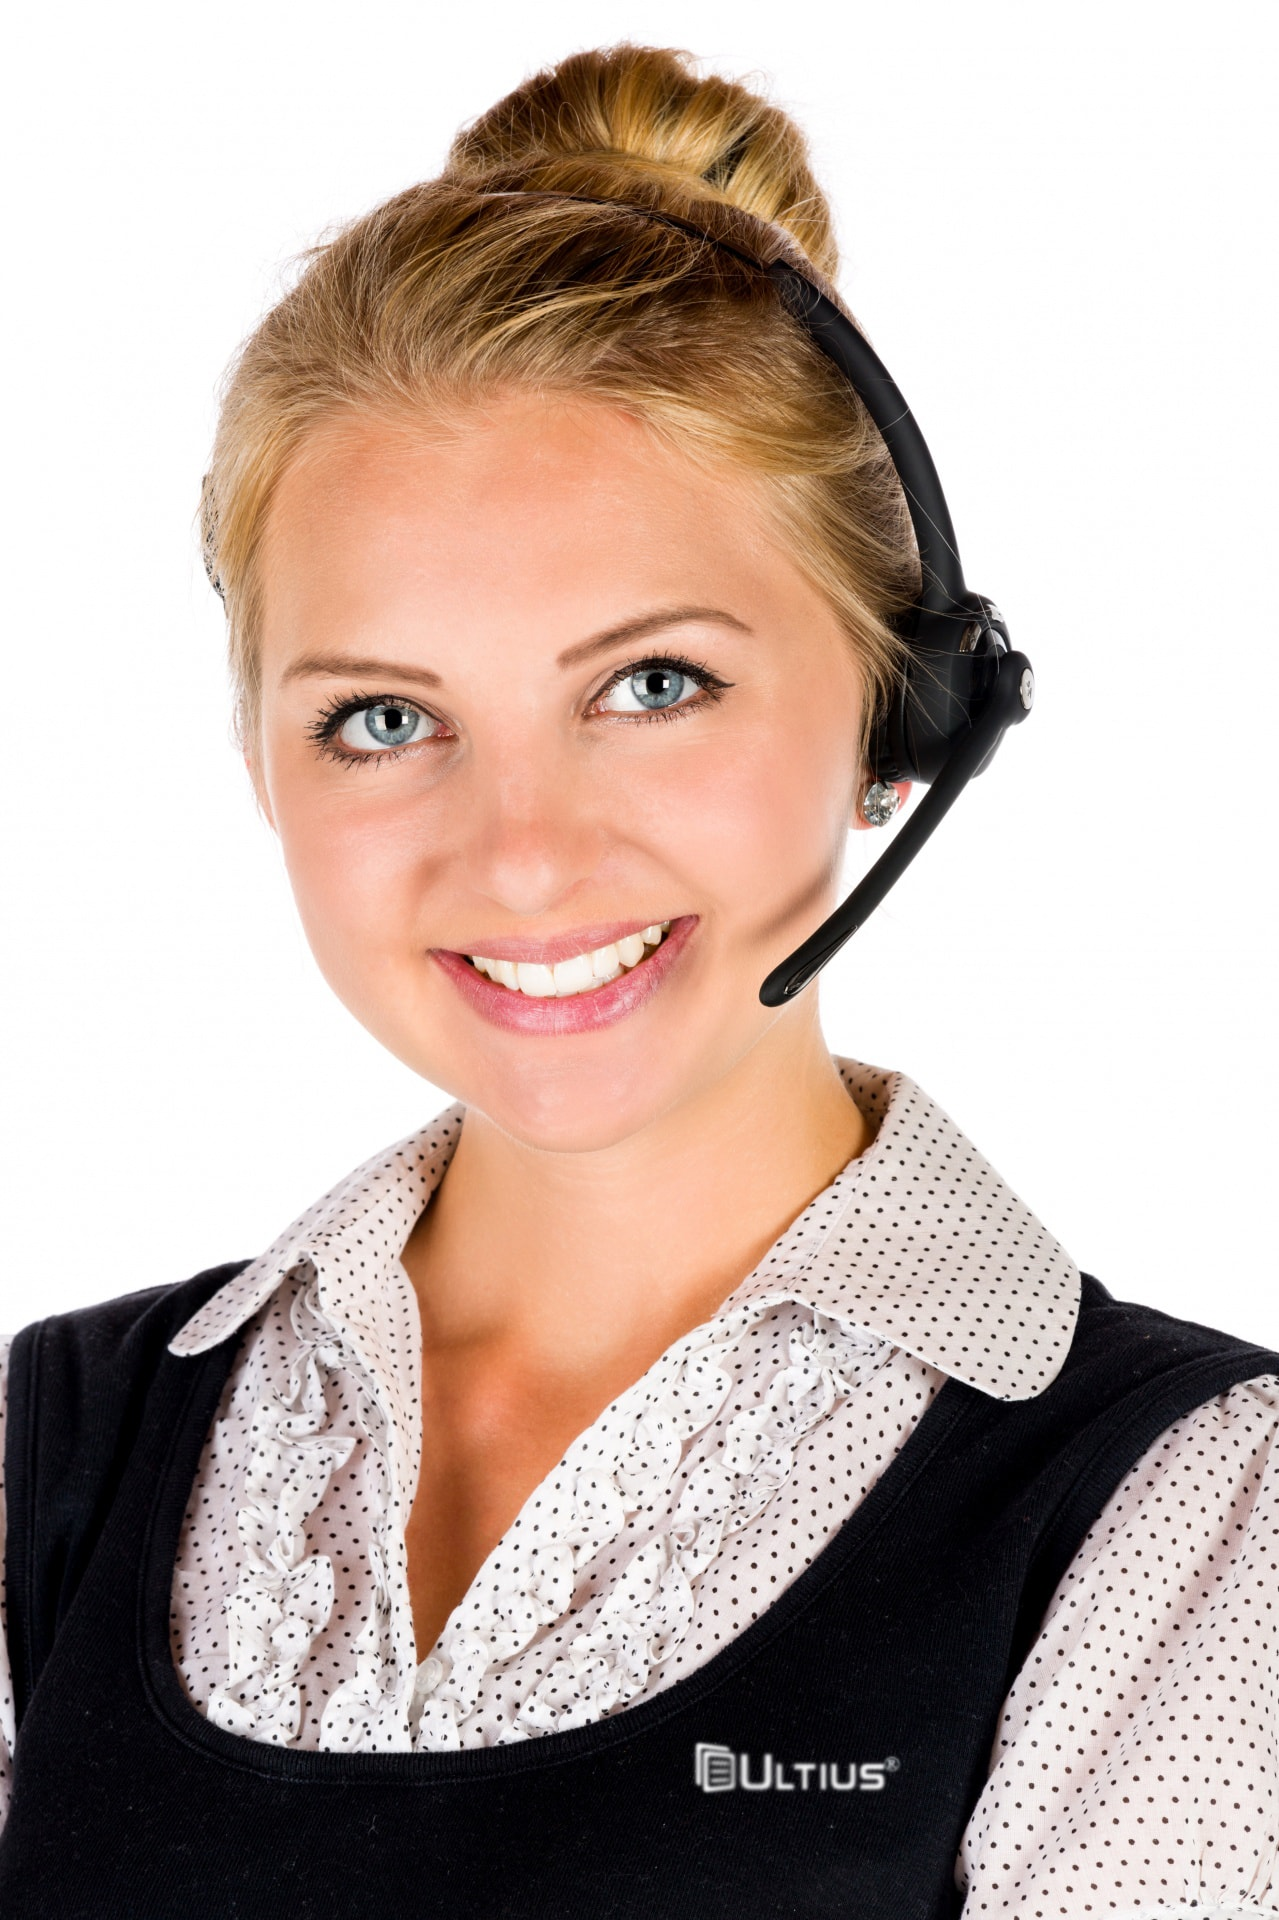 Ultius customer support representative with a headset.